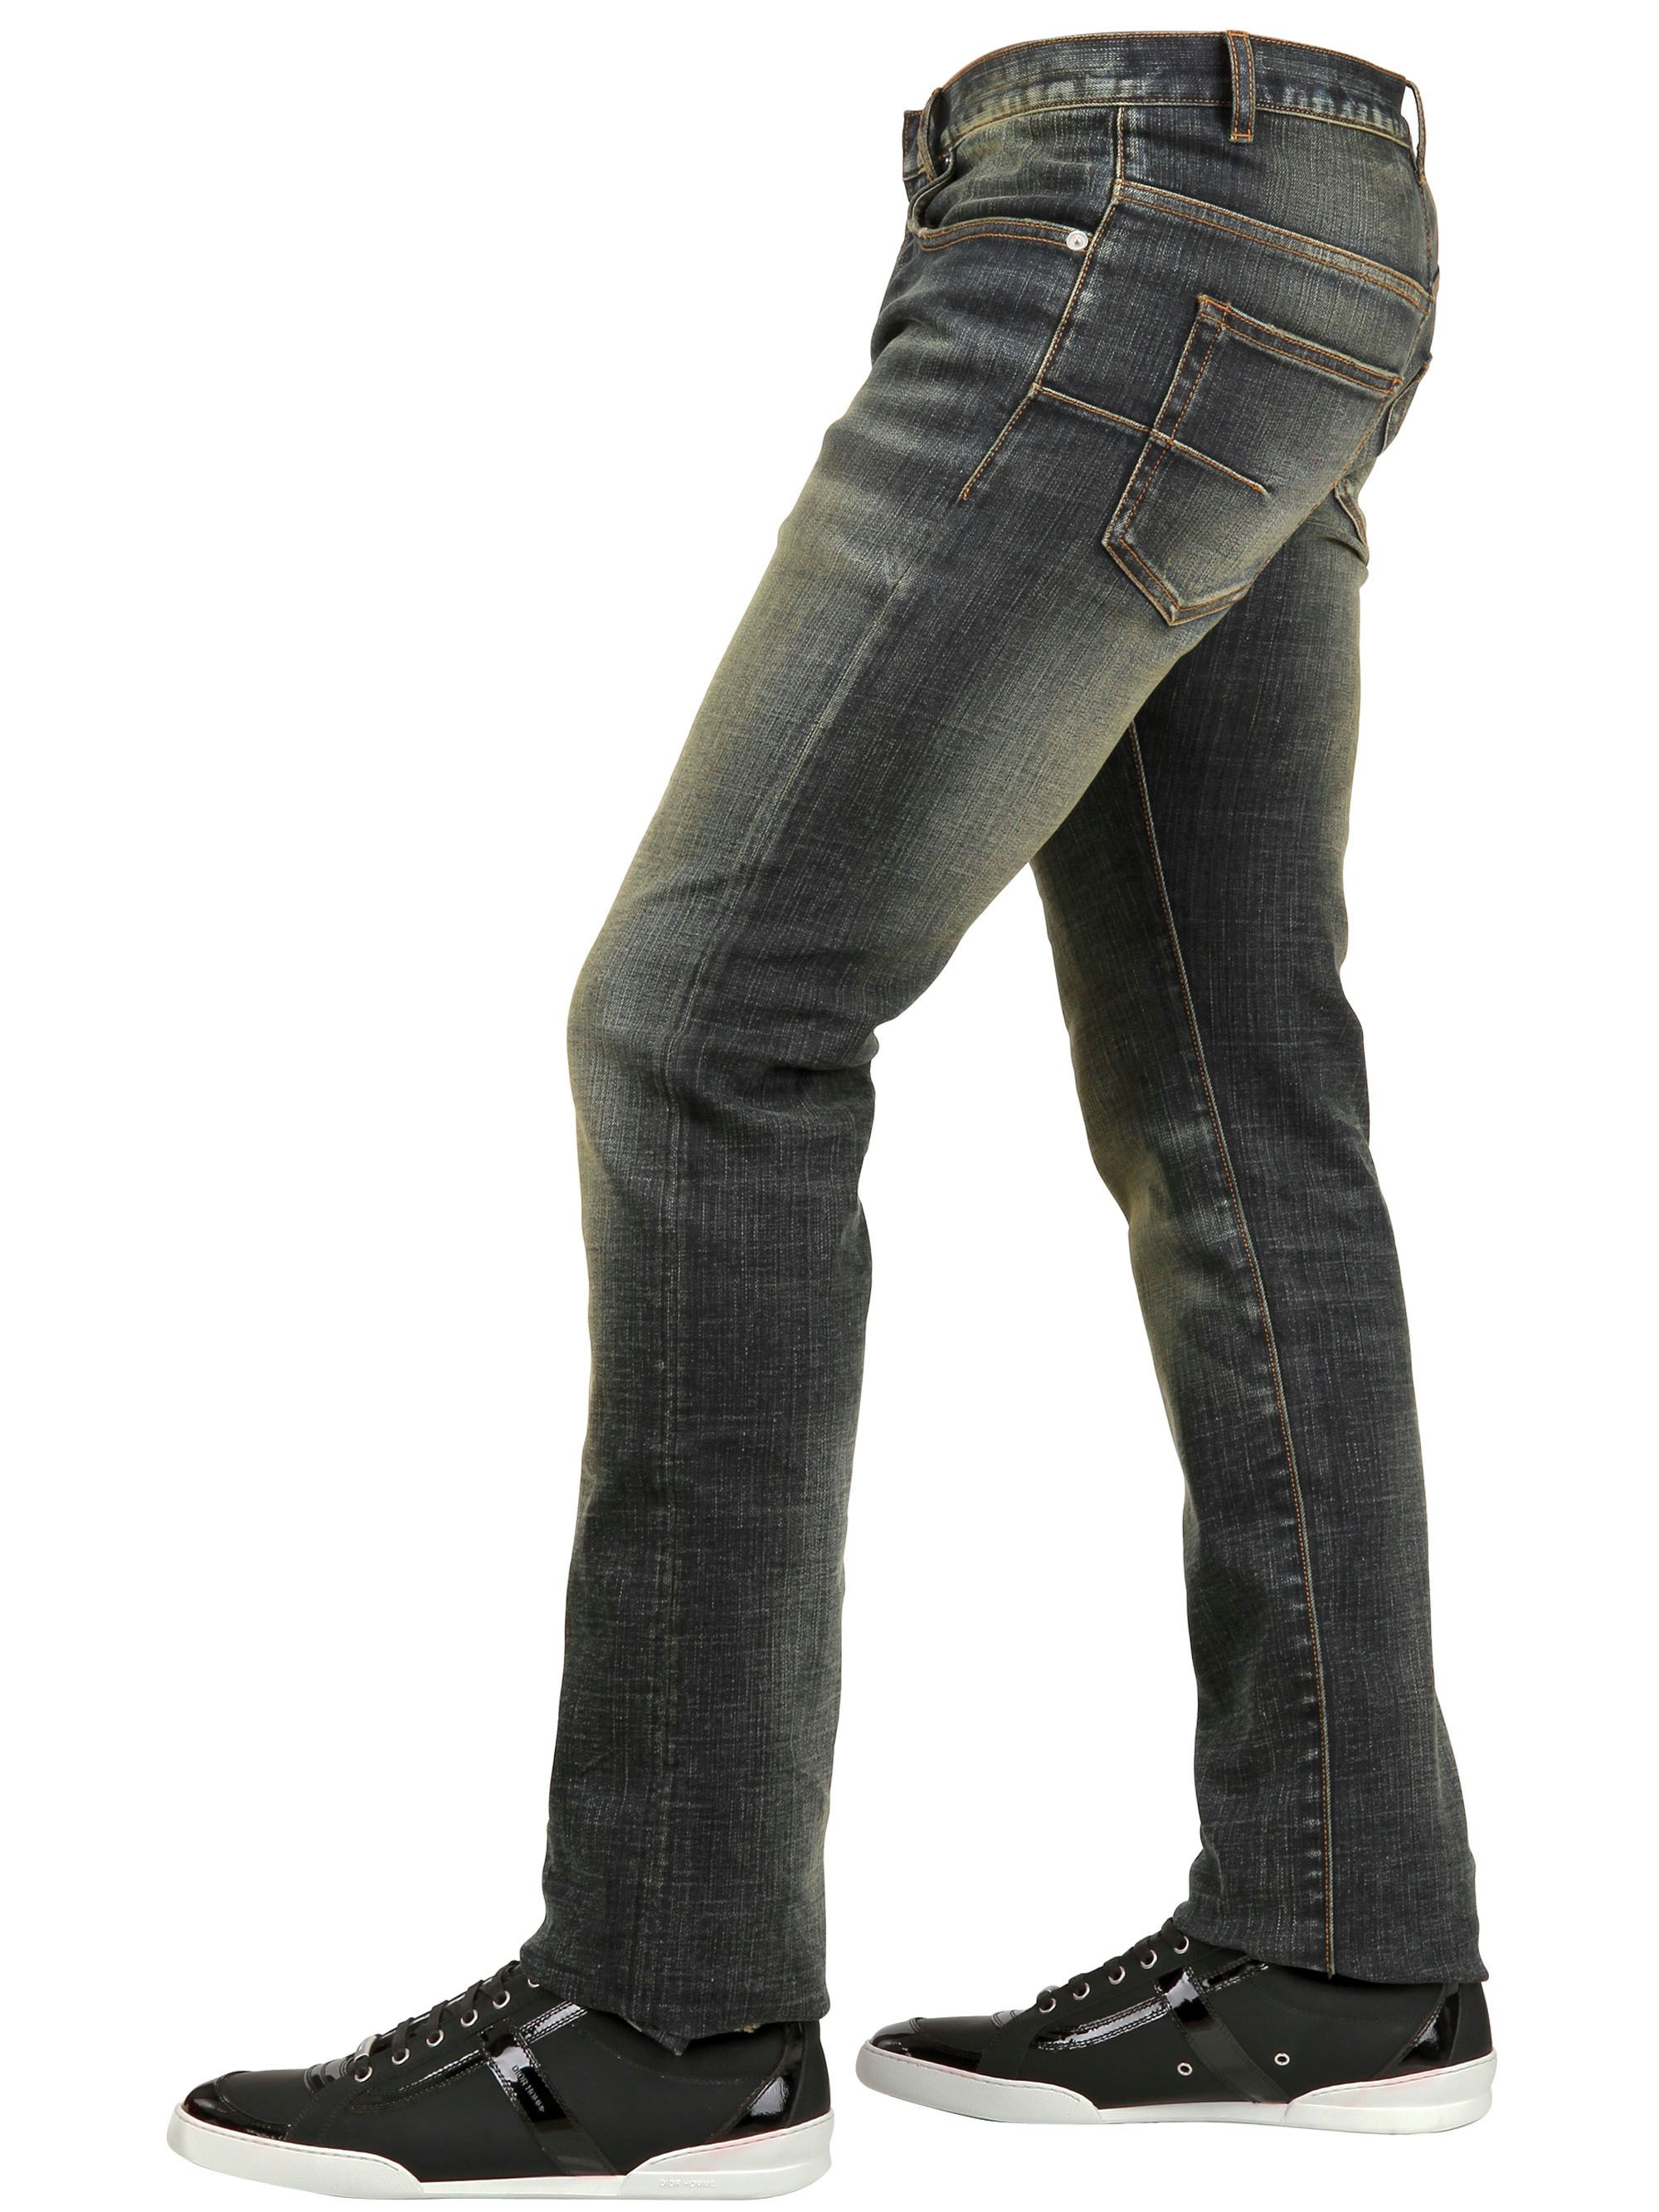 Dior homme blue waxed jeans